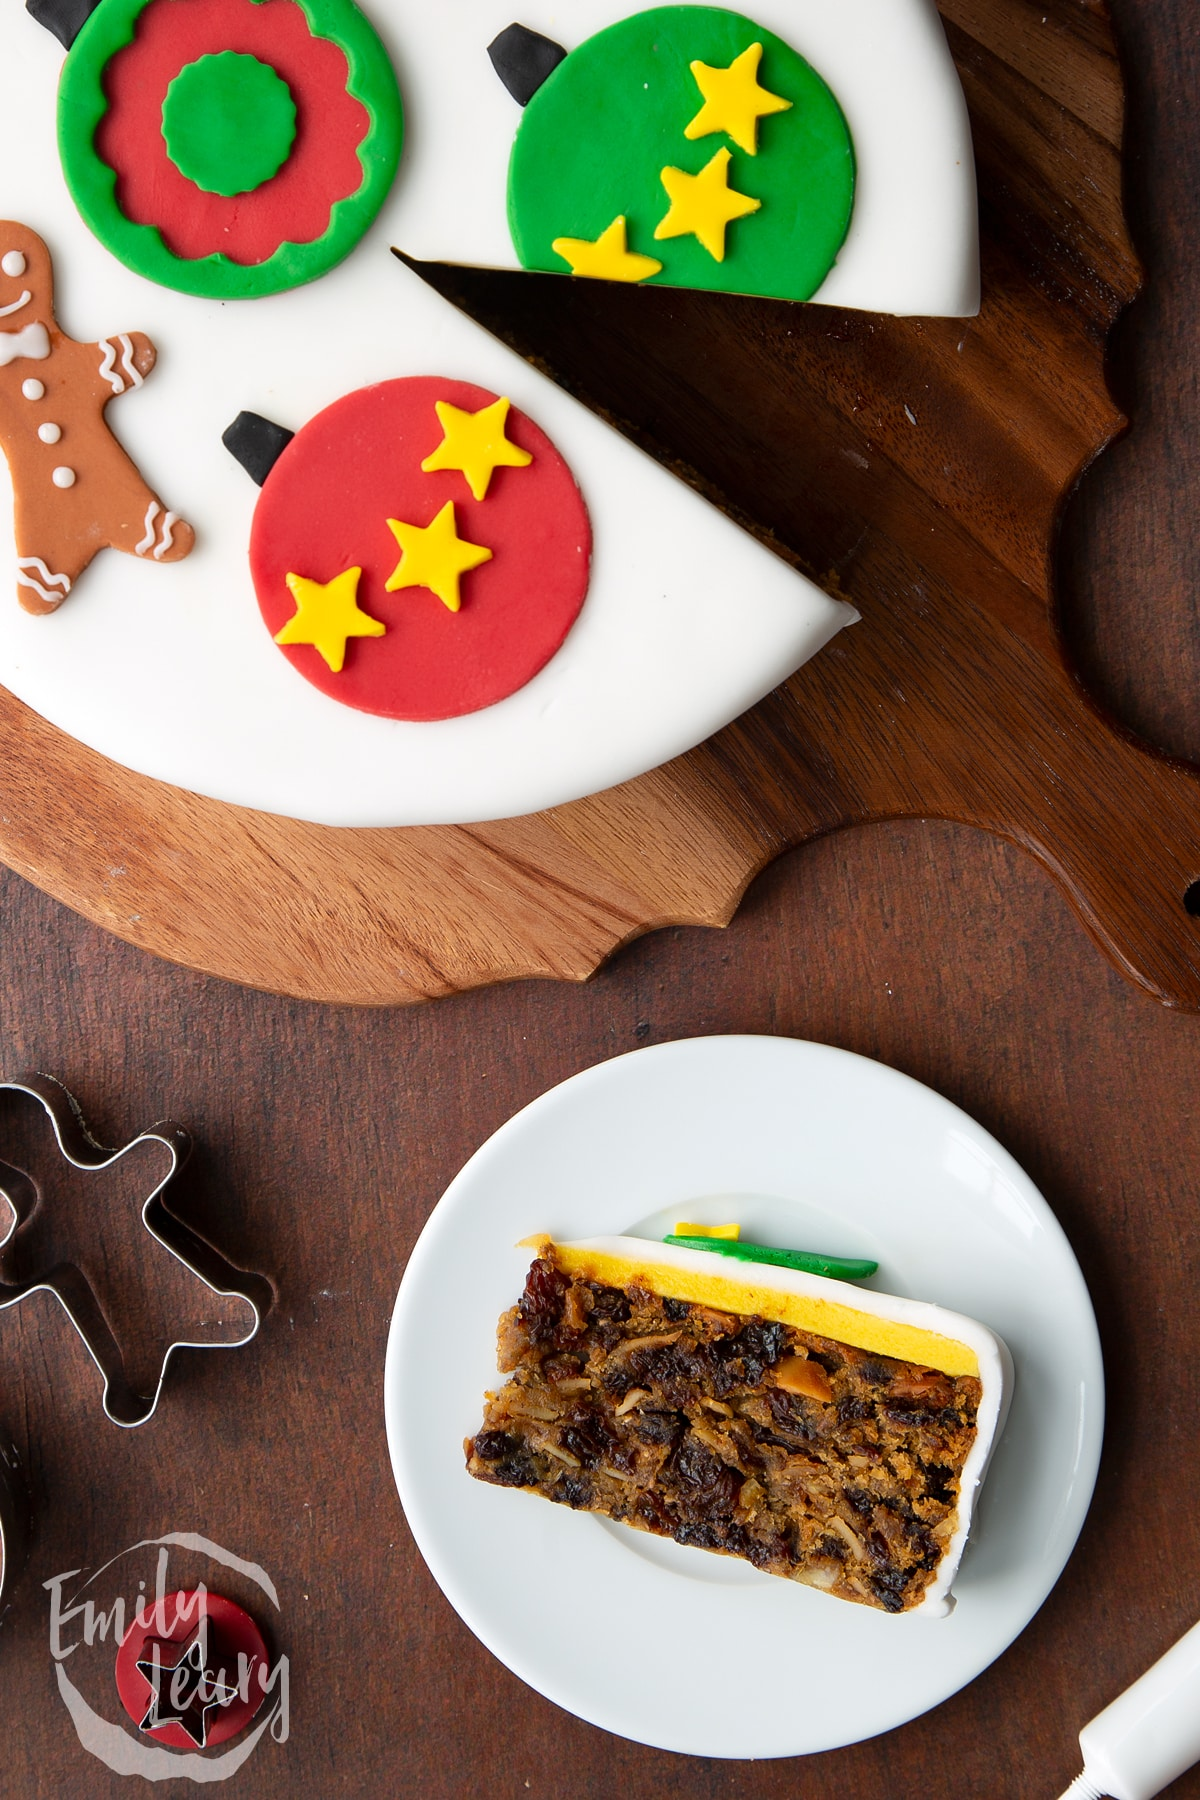 Slice of vegan Christmas cake laying on its side on a white plate. Shown from above.